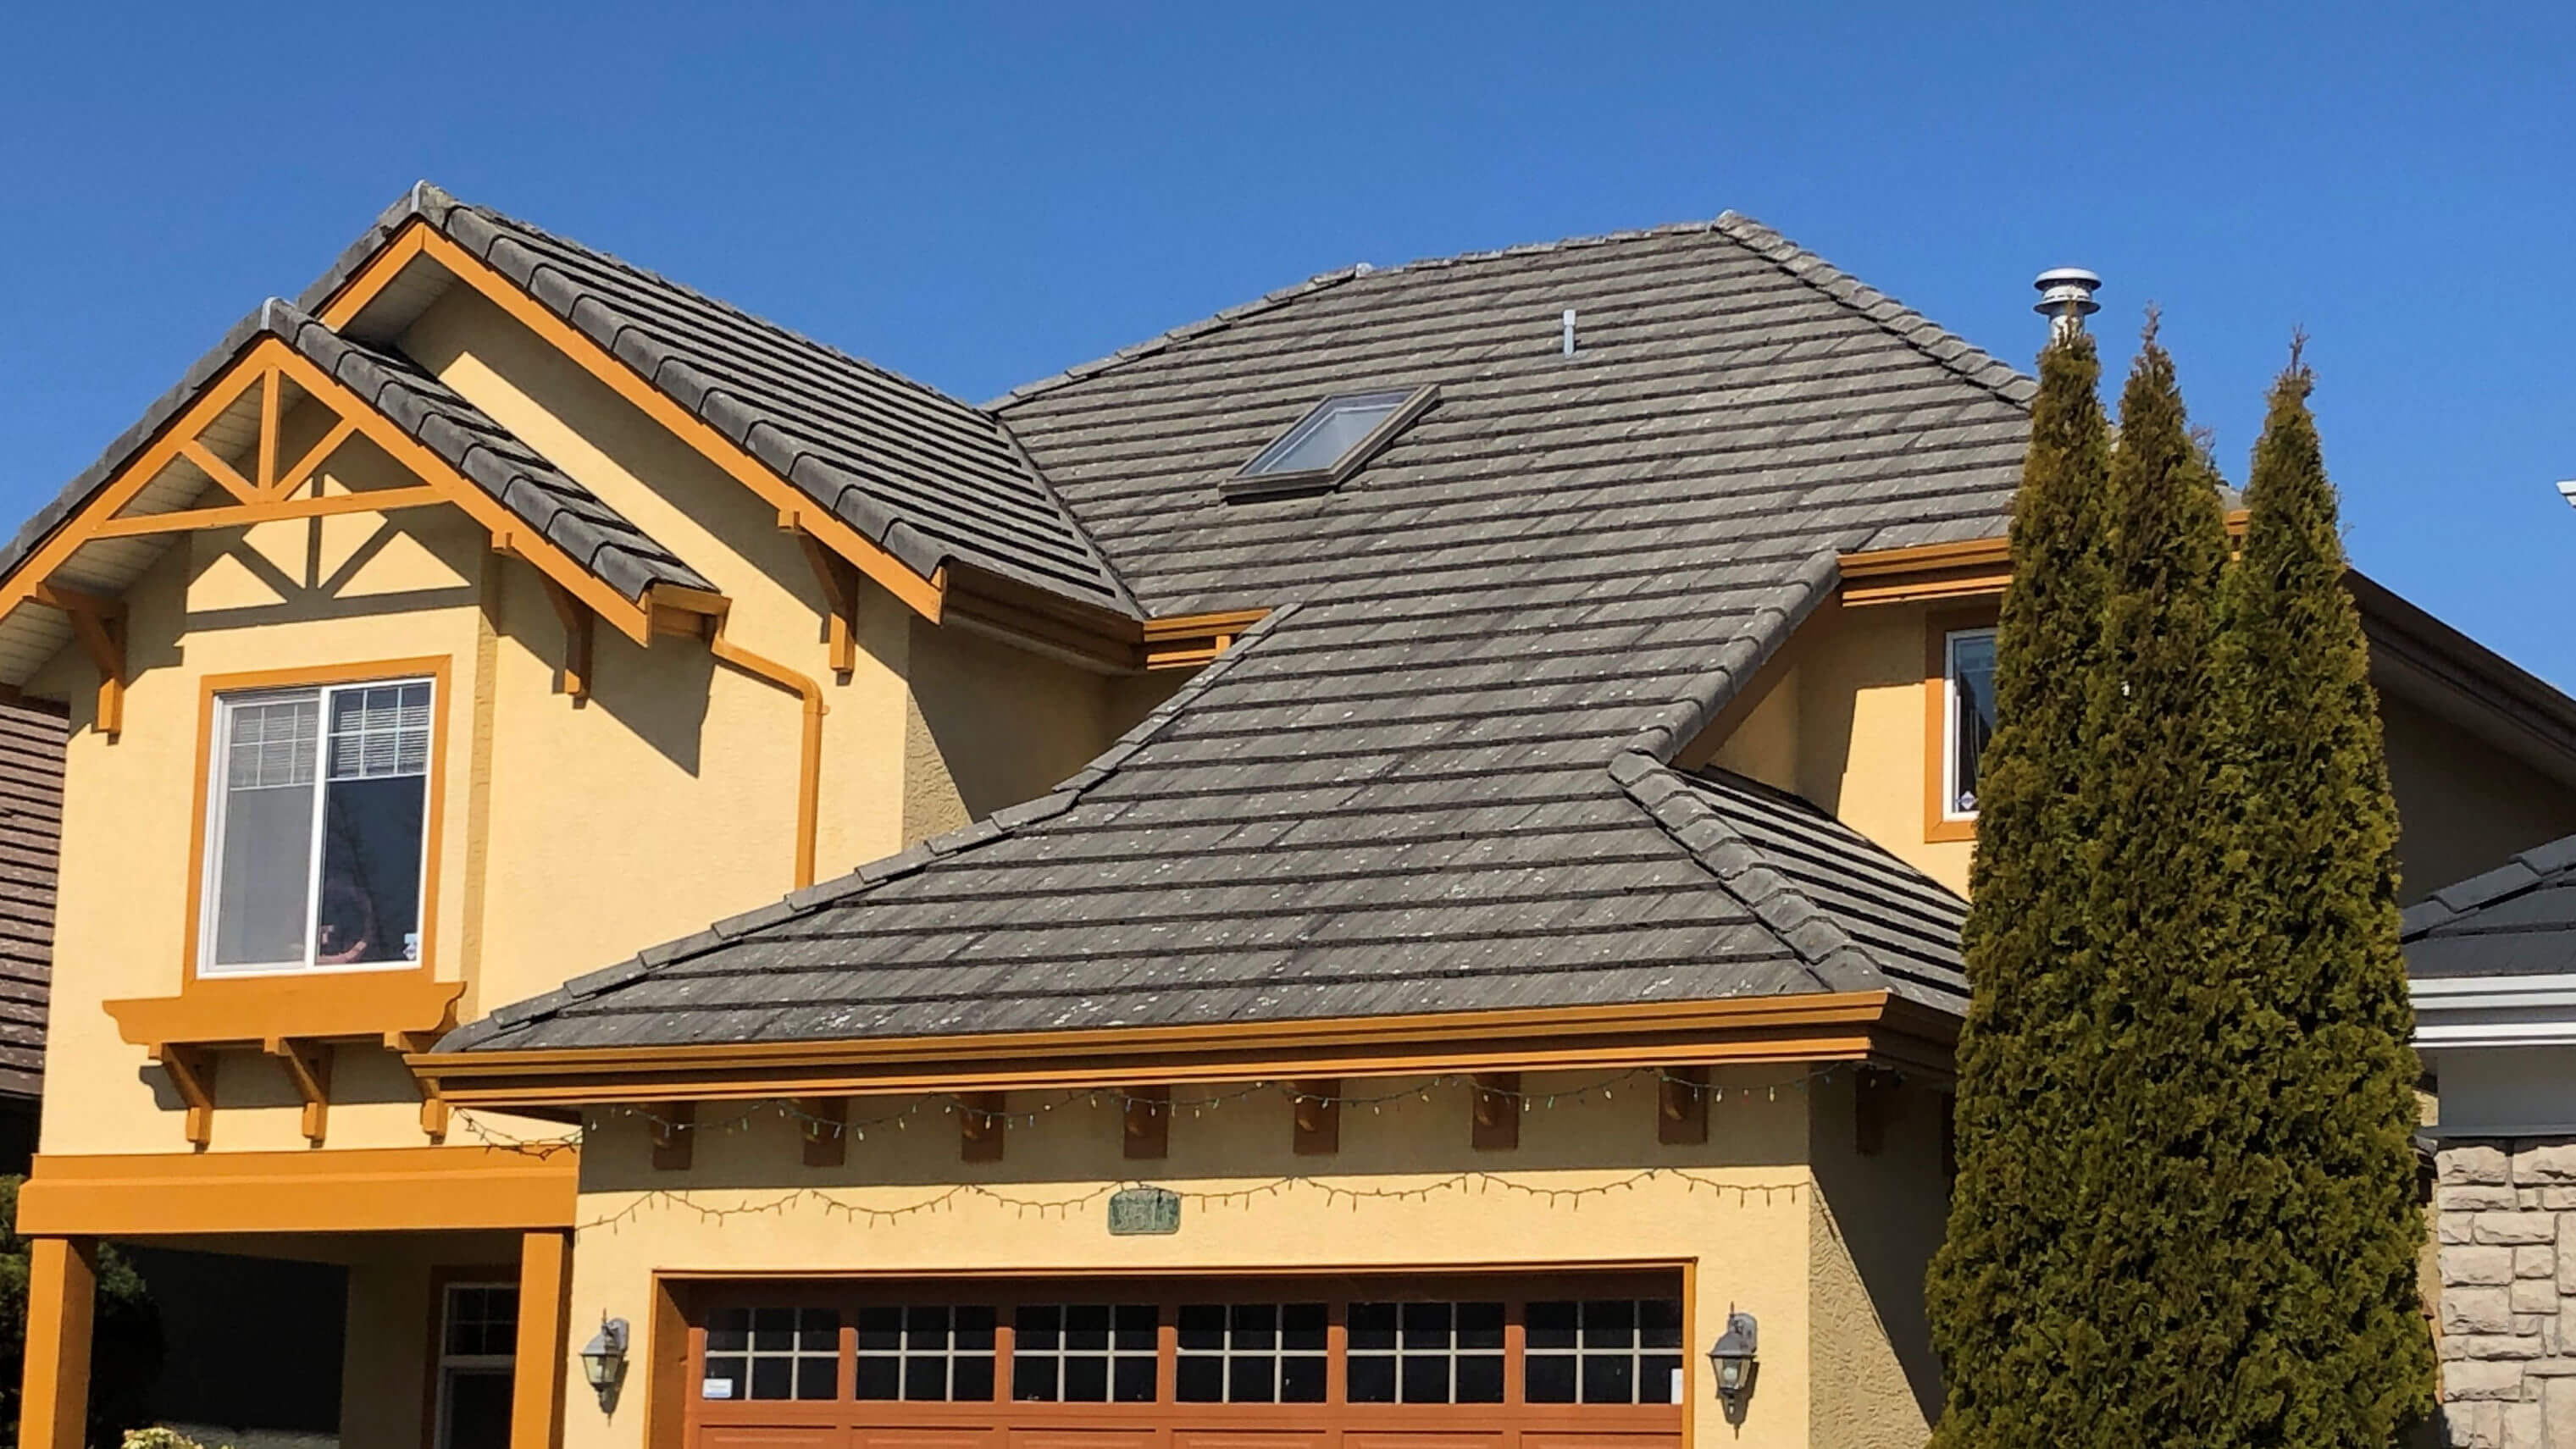 Example of roof efflorescence